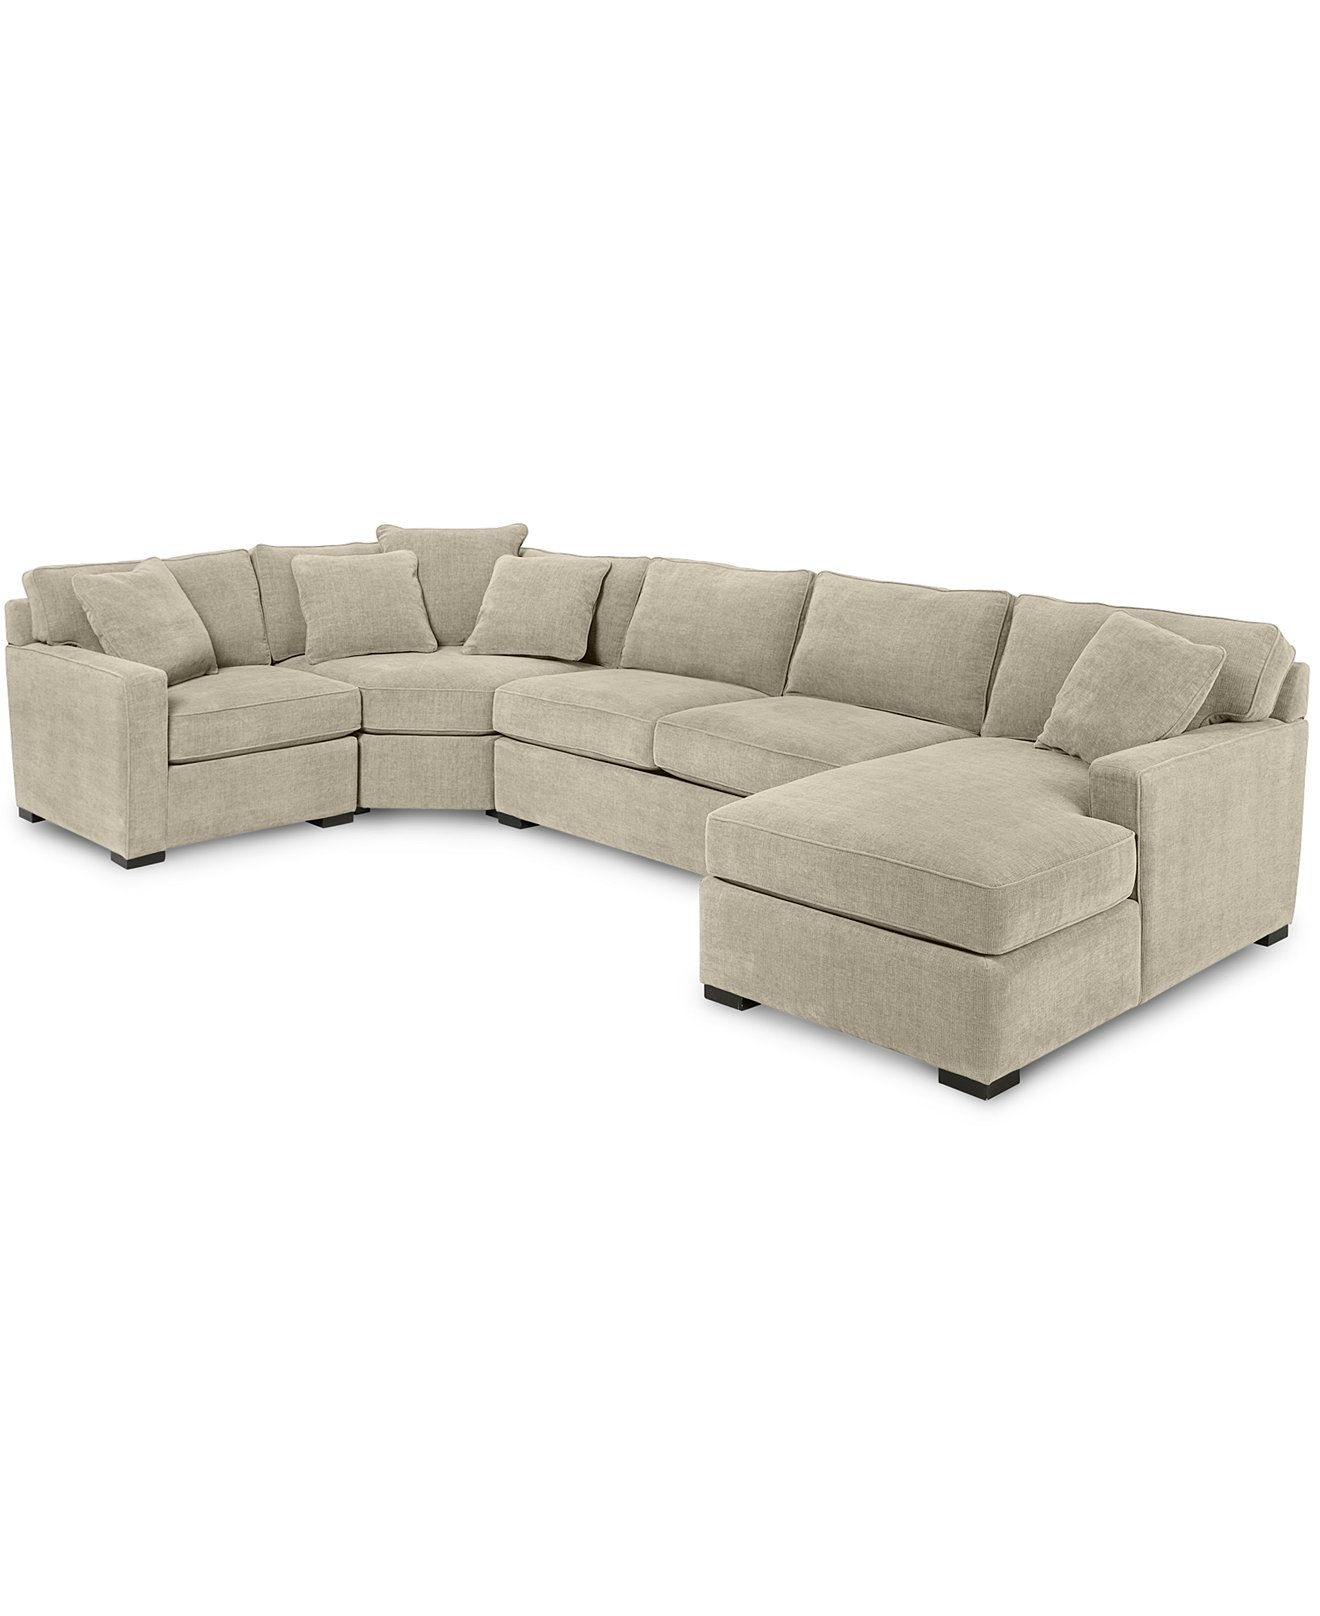 Radley 4-Piece Fabric Chaise Sectional Sofa, Created For Macy's throughout Norfolk Chocolate 6 Piece Sectionals With Raf Chaise (Image 21 of 30)